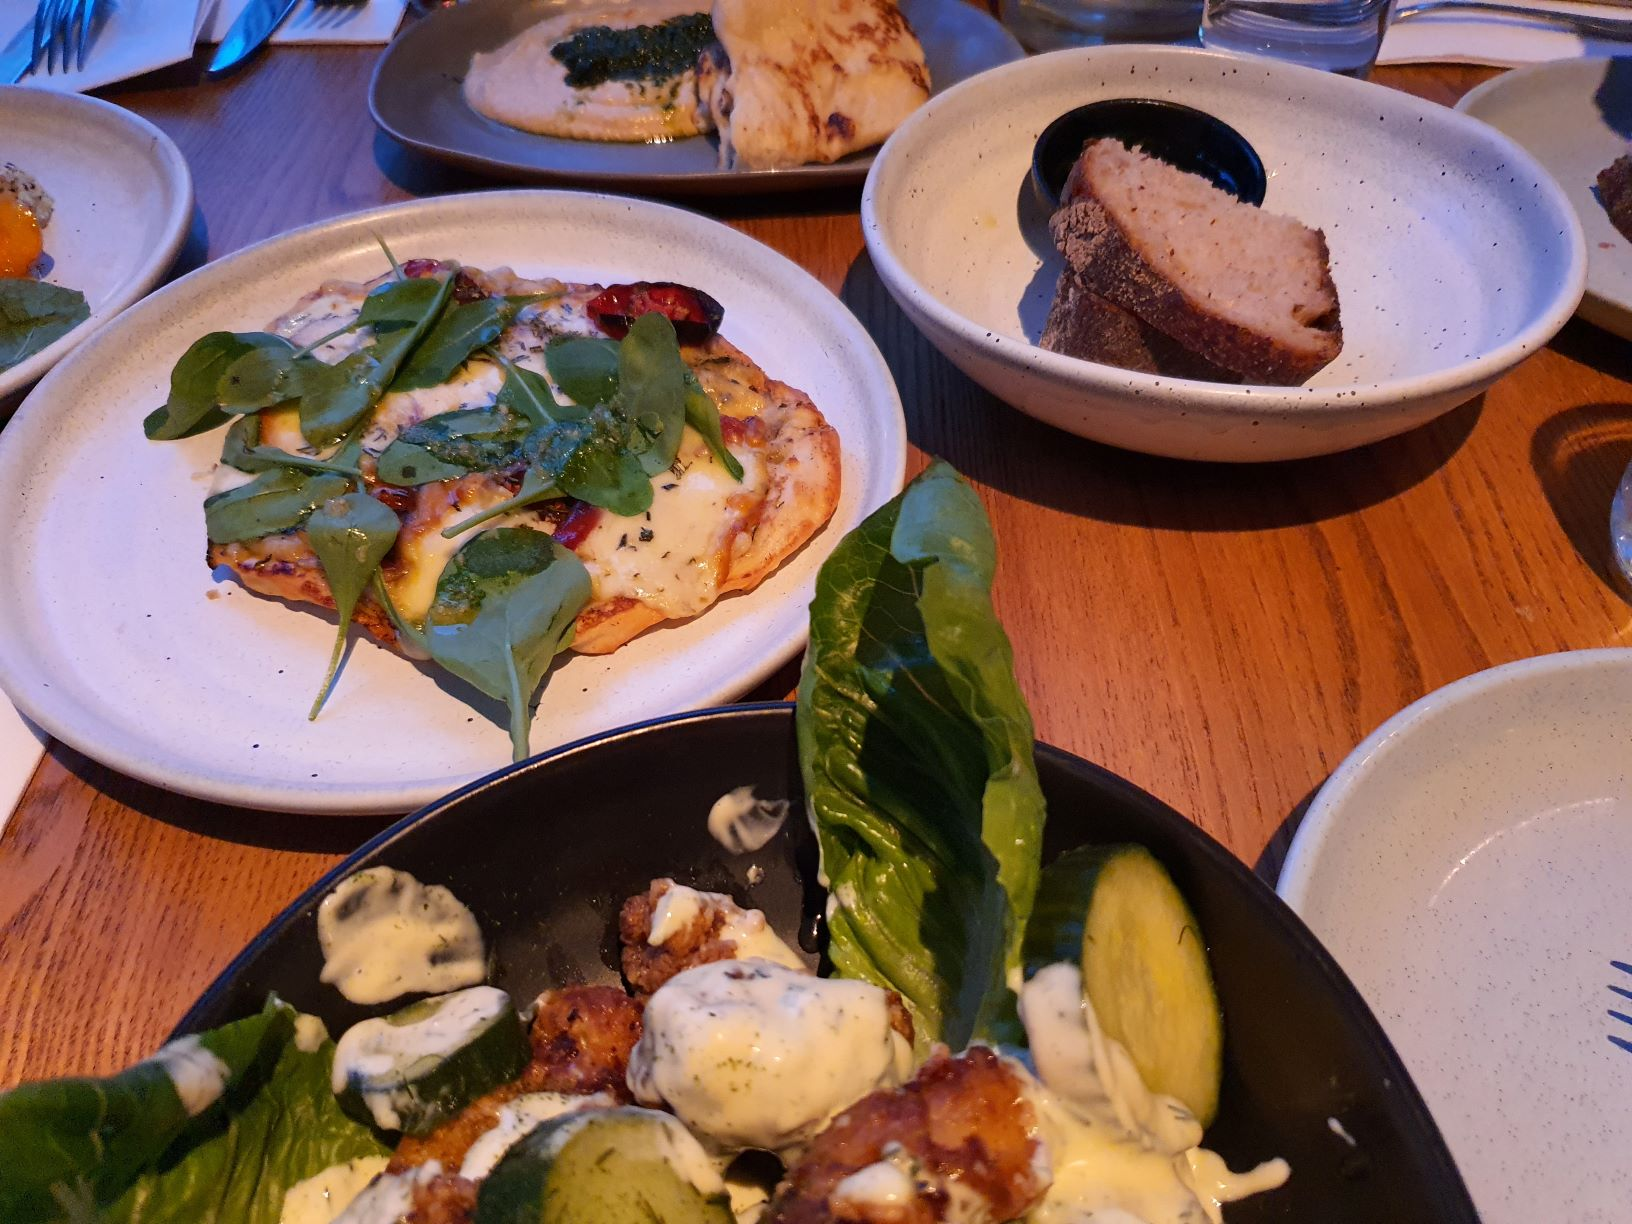 Dinner at Three Seven Two